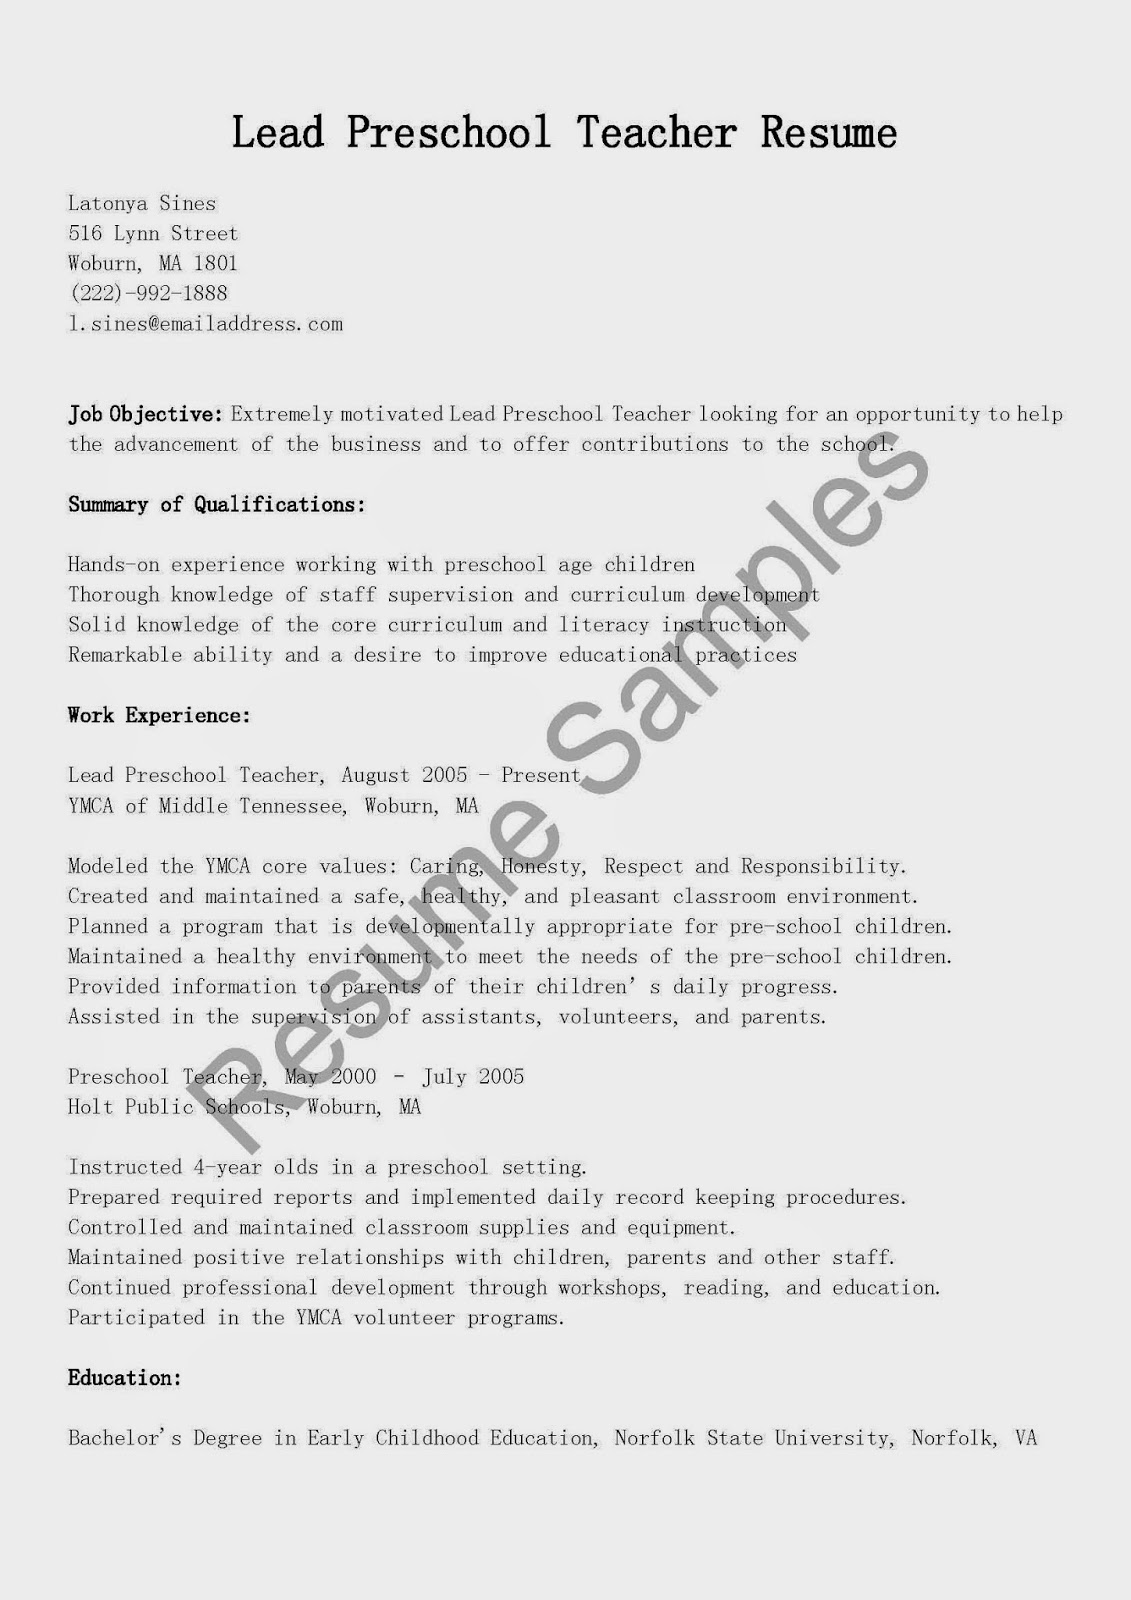 Resumes For Educators Breakupus Engaging Outstanding Resume Designs You  Wish You Thought Of Hongkiat With Lovely  Skills For Teacher Resume